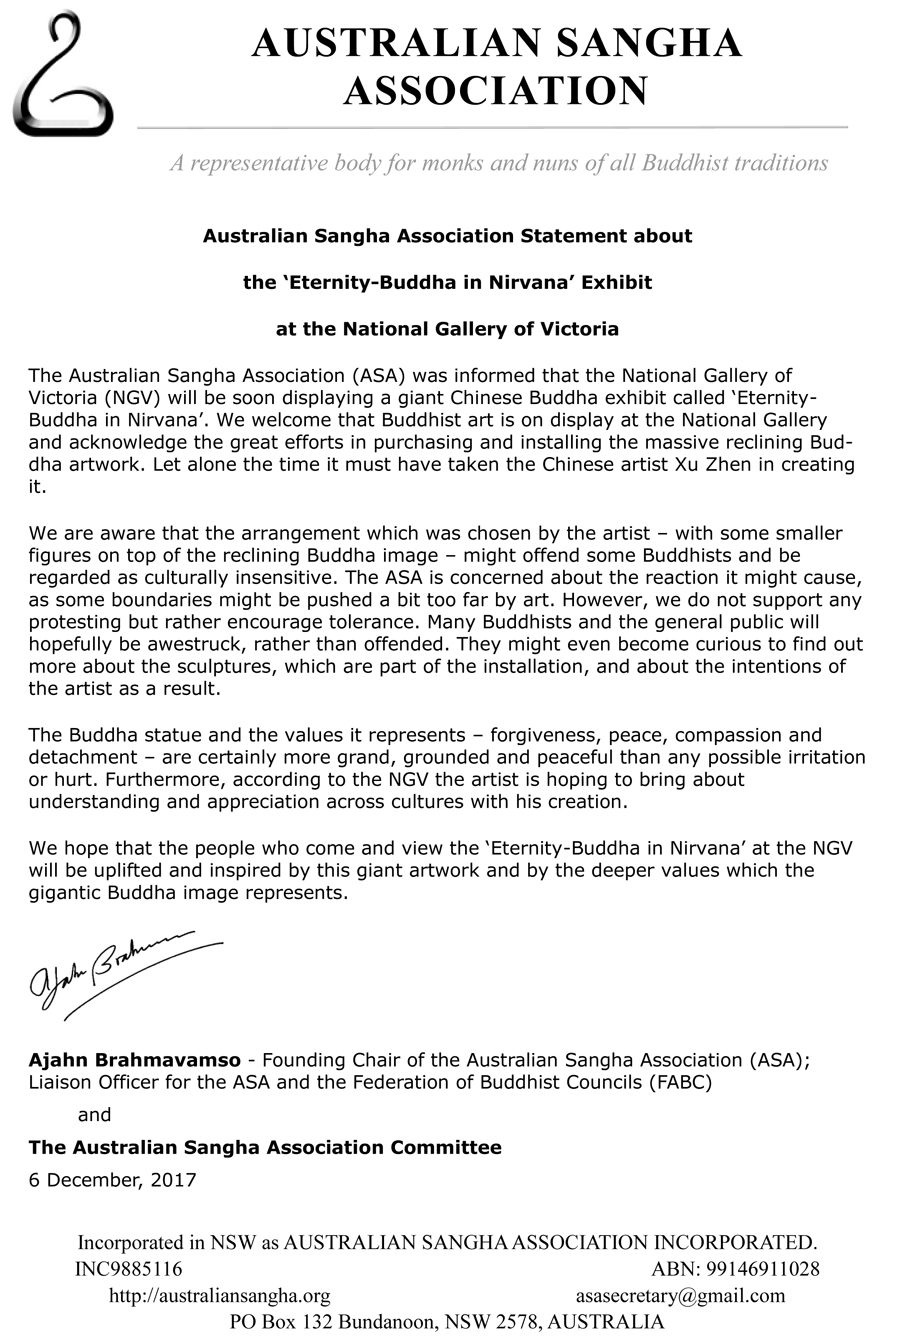 ASA statement re Eternity Buddha at NGV_1